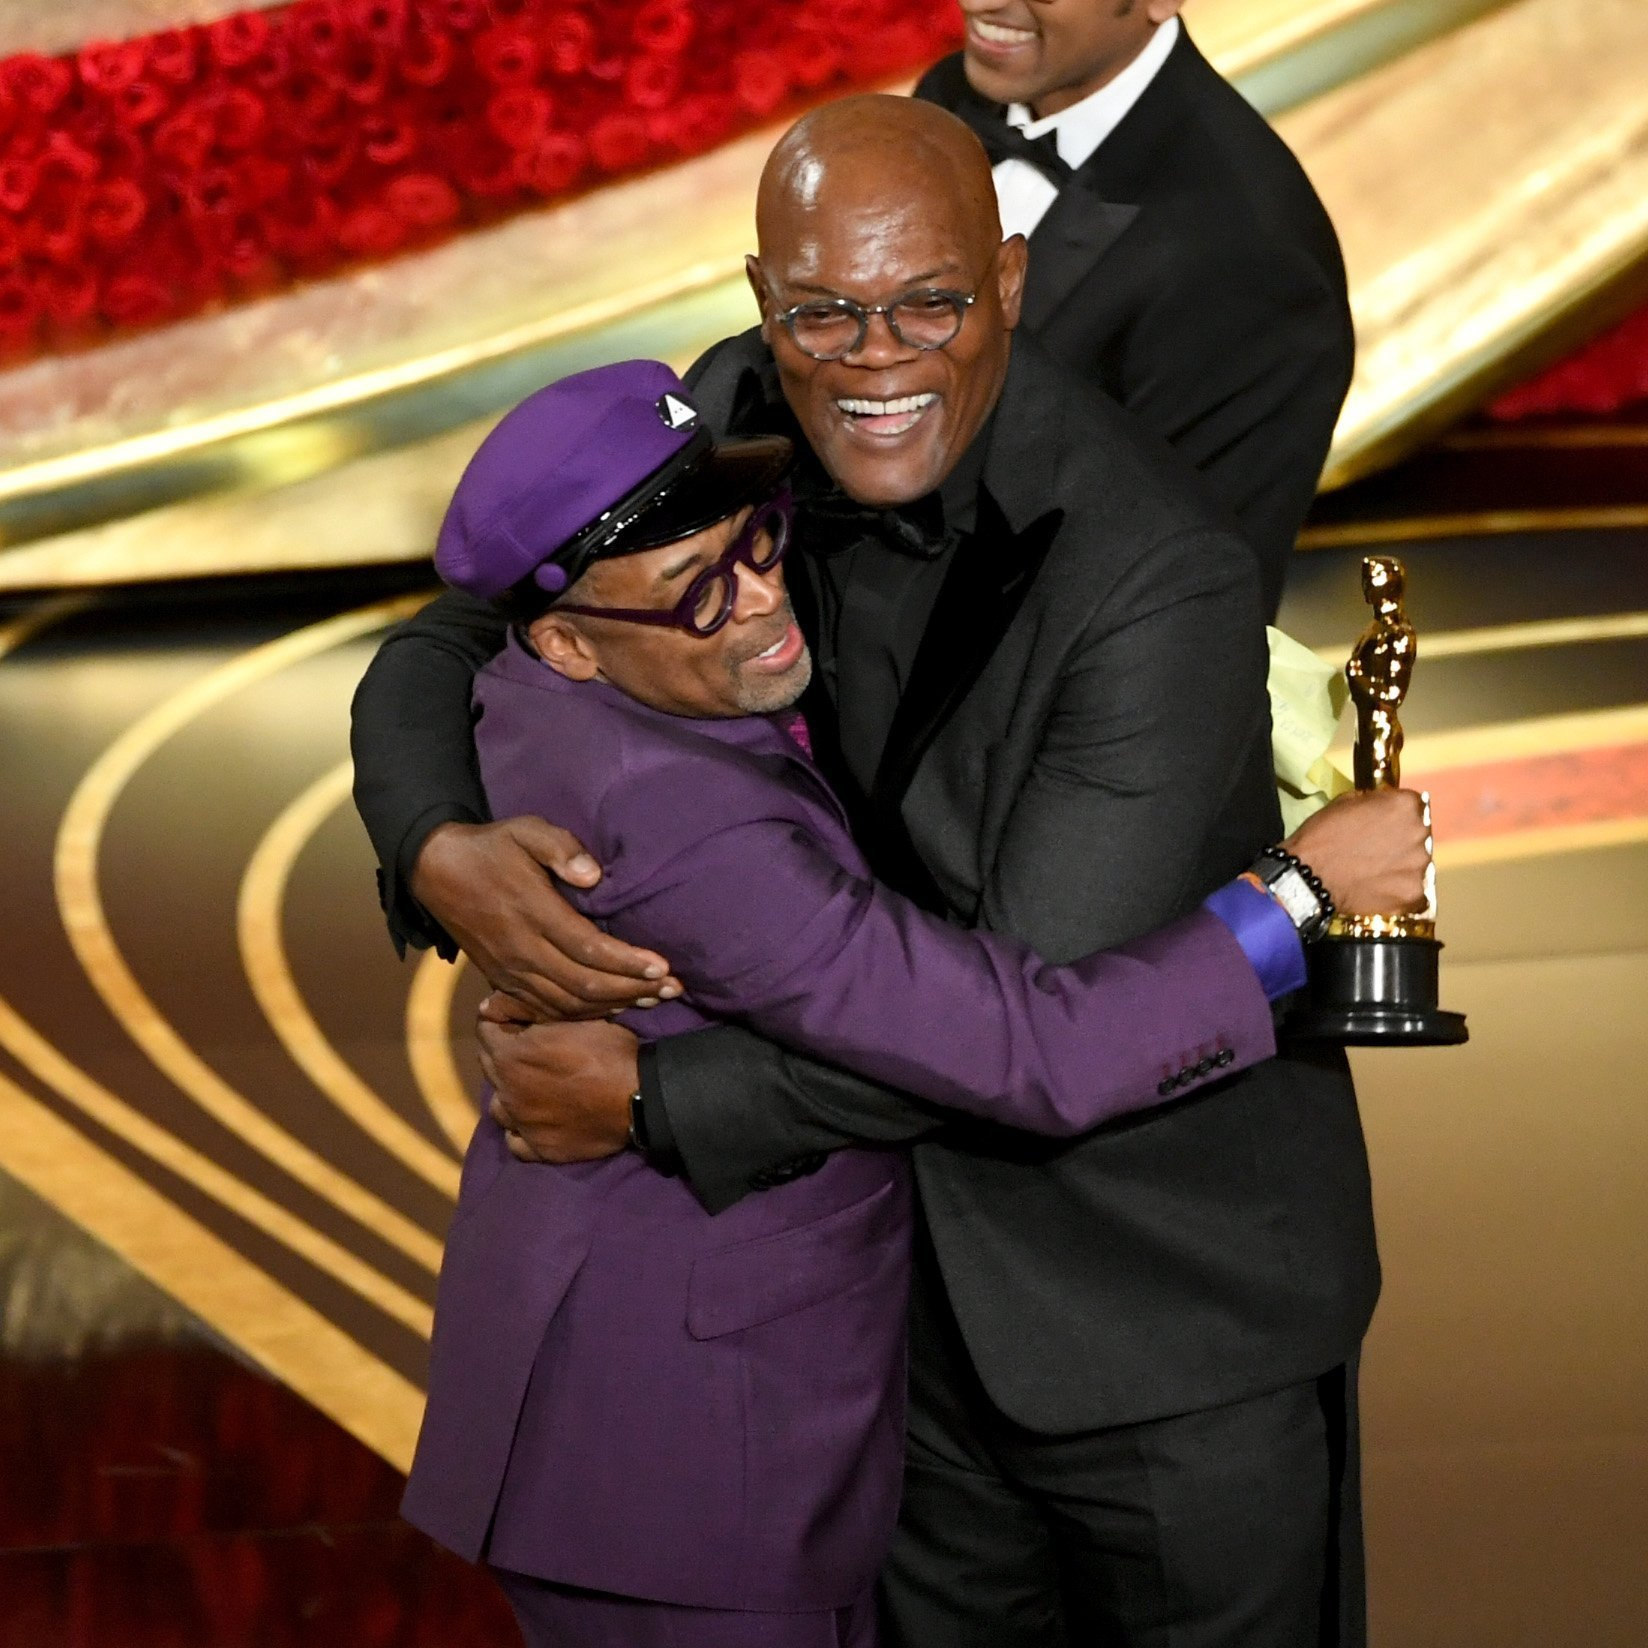 Samuel L Jackson hugging Spike Lee at the 2019 Academy Awards | Photo: Getty Images